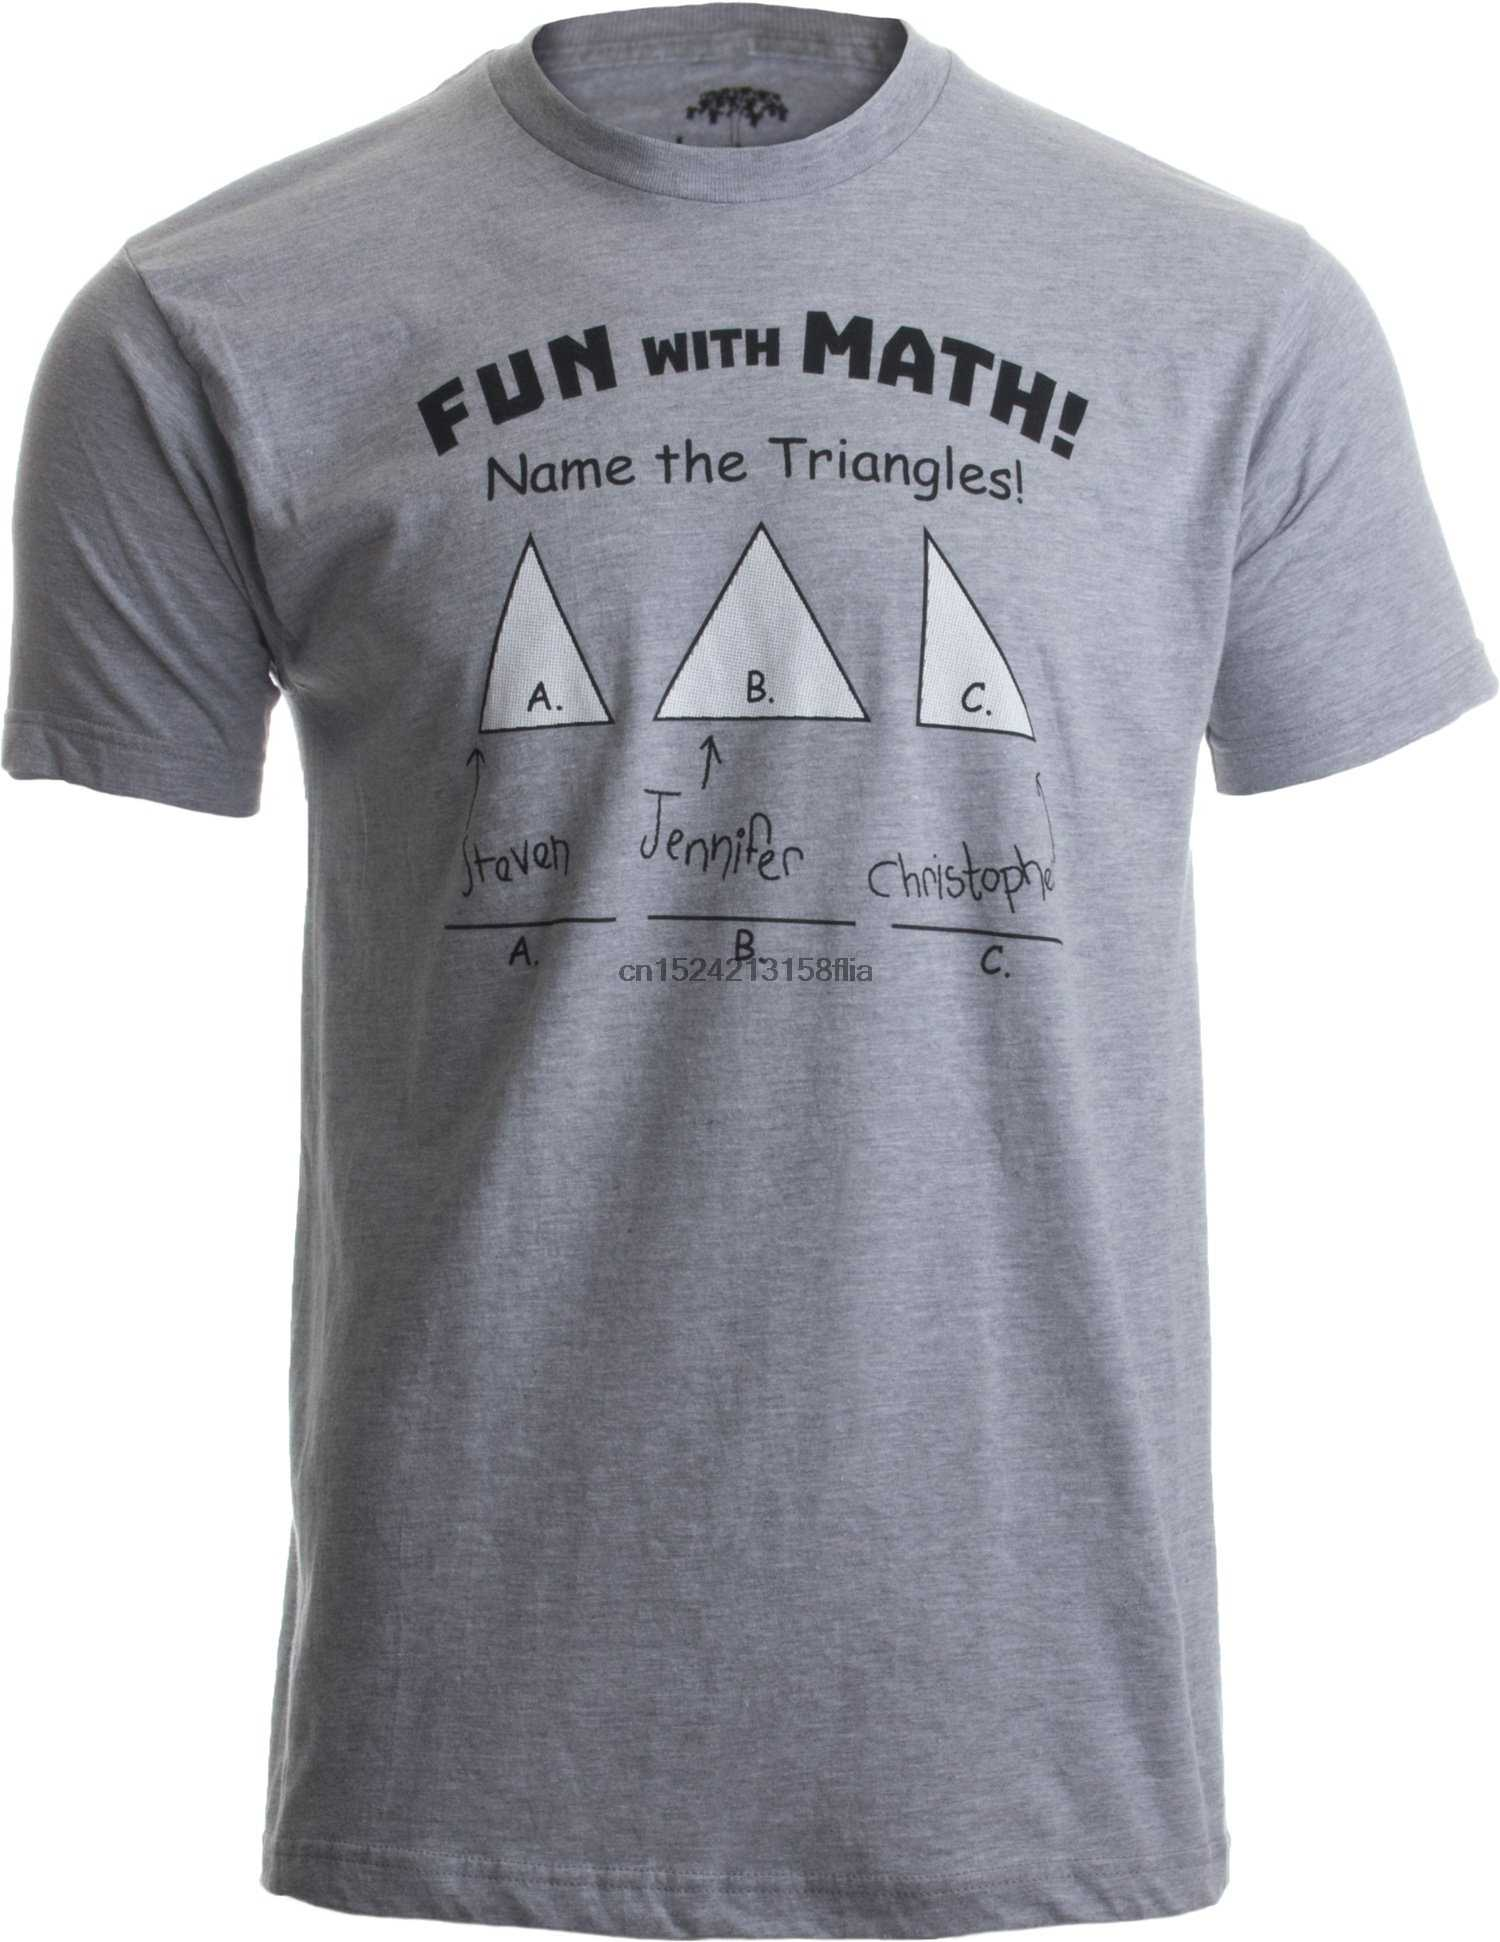 69286edc Fun With Math Name The Triangles Funny Mathematics Teacher Pun Unisex T- Shirt